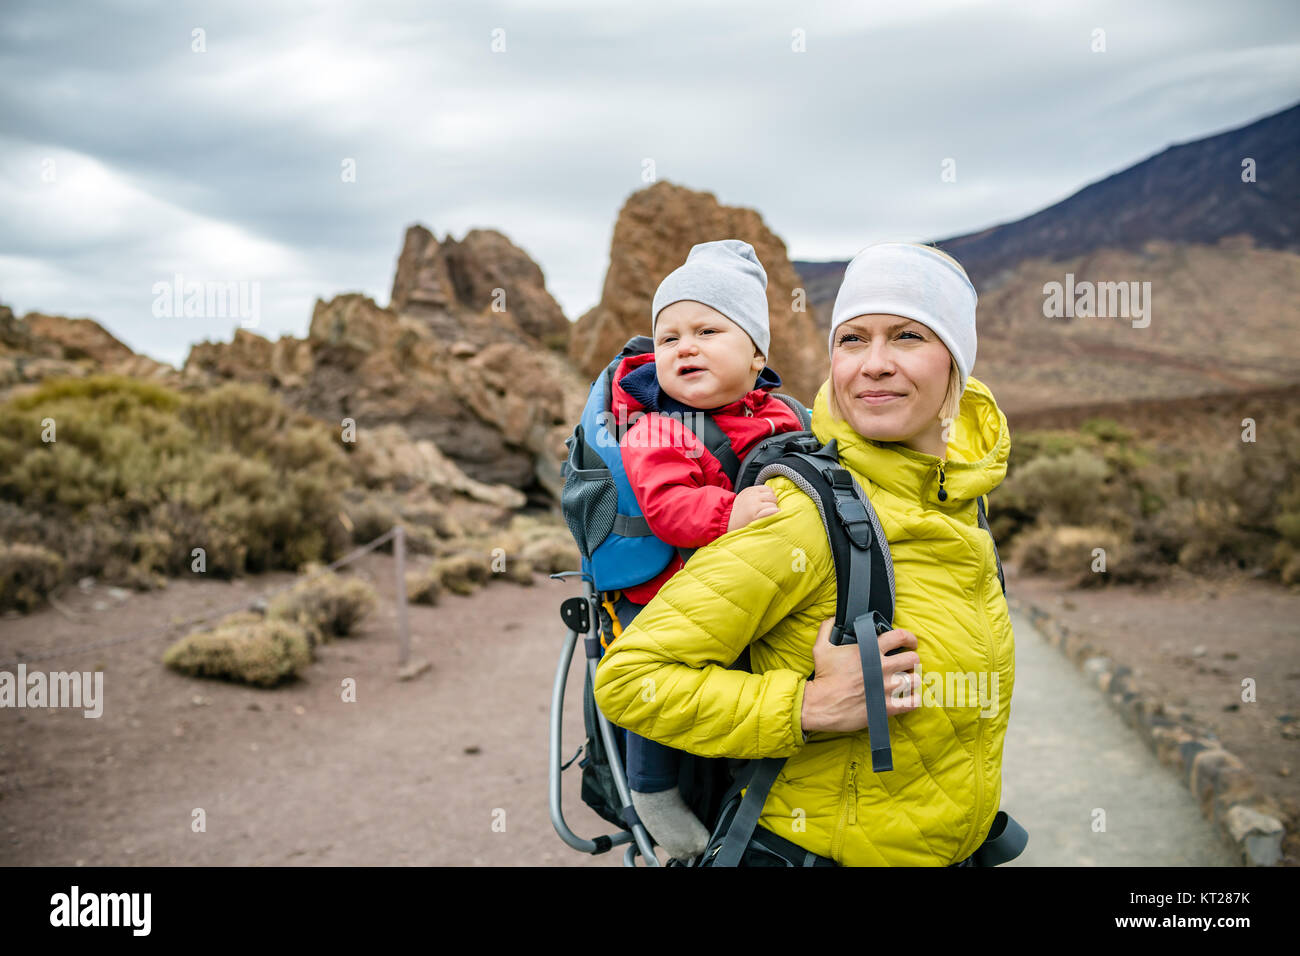 Super mom with baby boy travelling in backpack. Mother on hiking adventure with child, family trip in mountains. - Stock Image